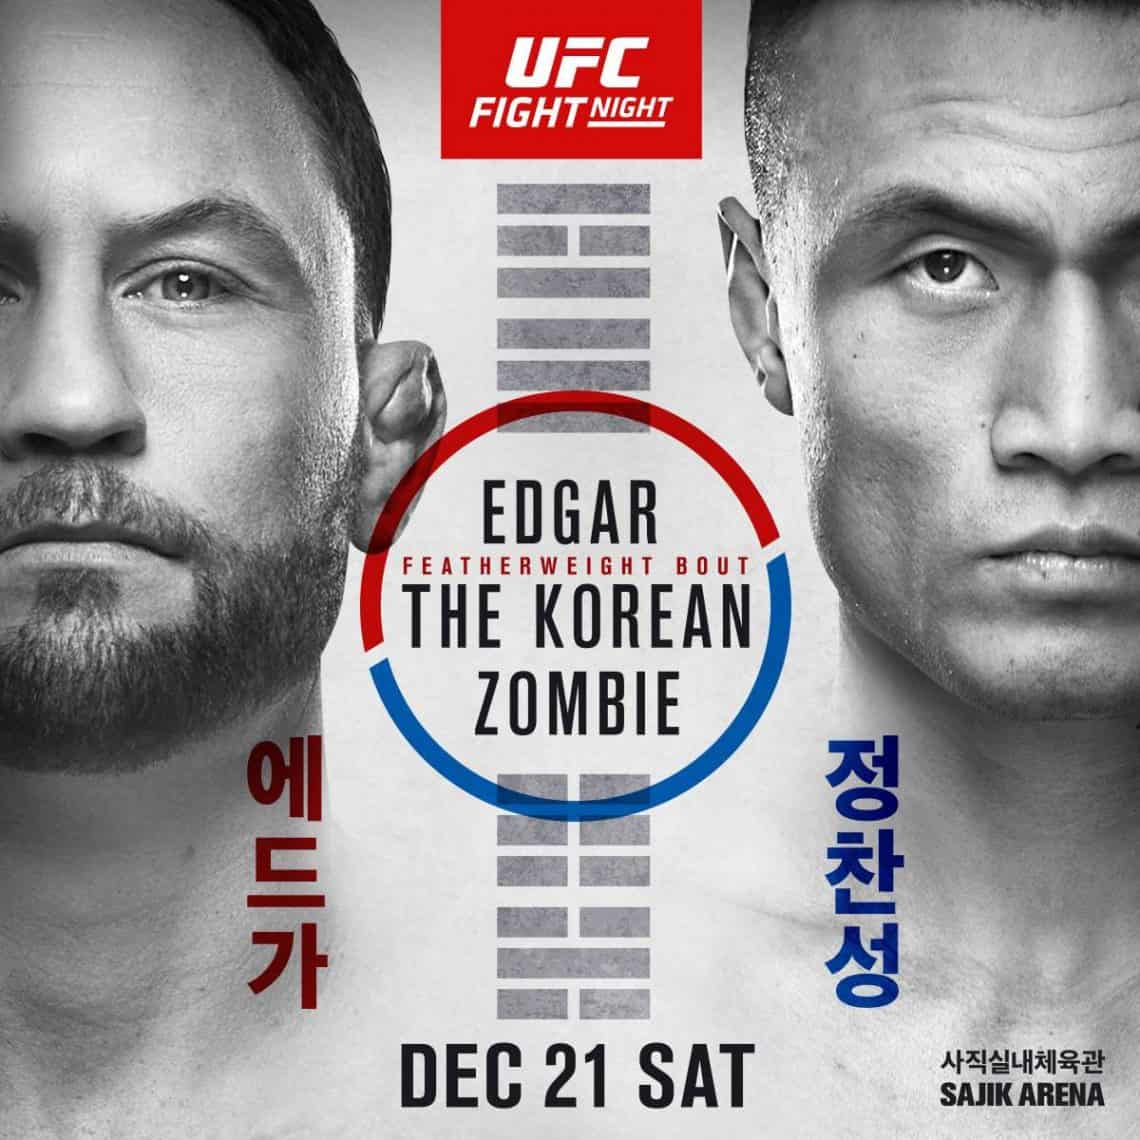 UFC Fight Night: Edgar vs. The Korean Zombie 1